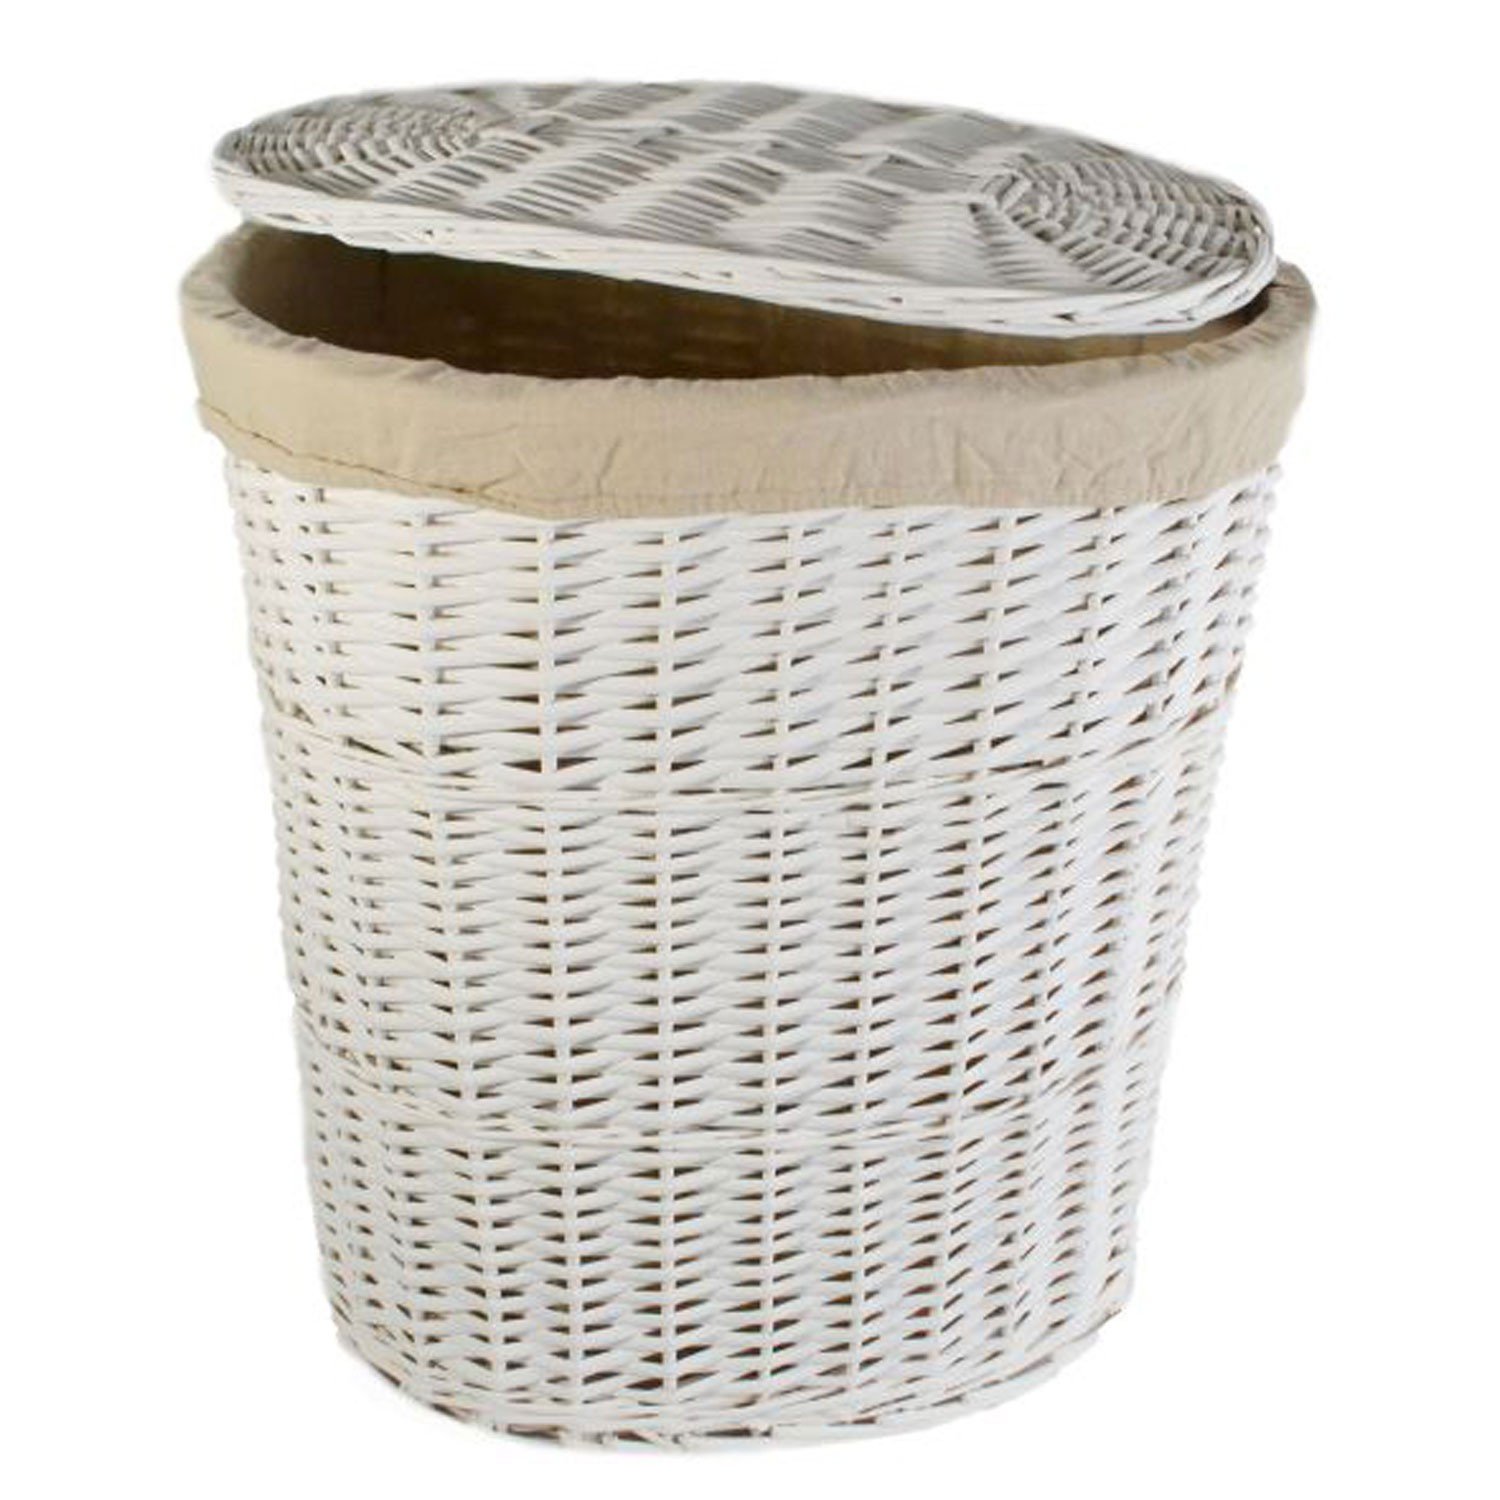 Oval Willow Large Laundry Basket White